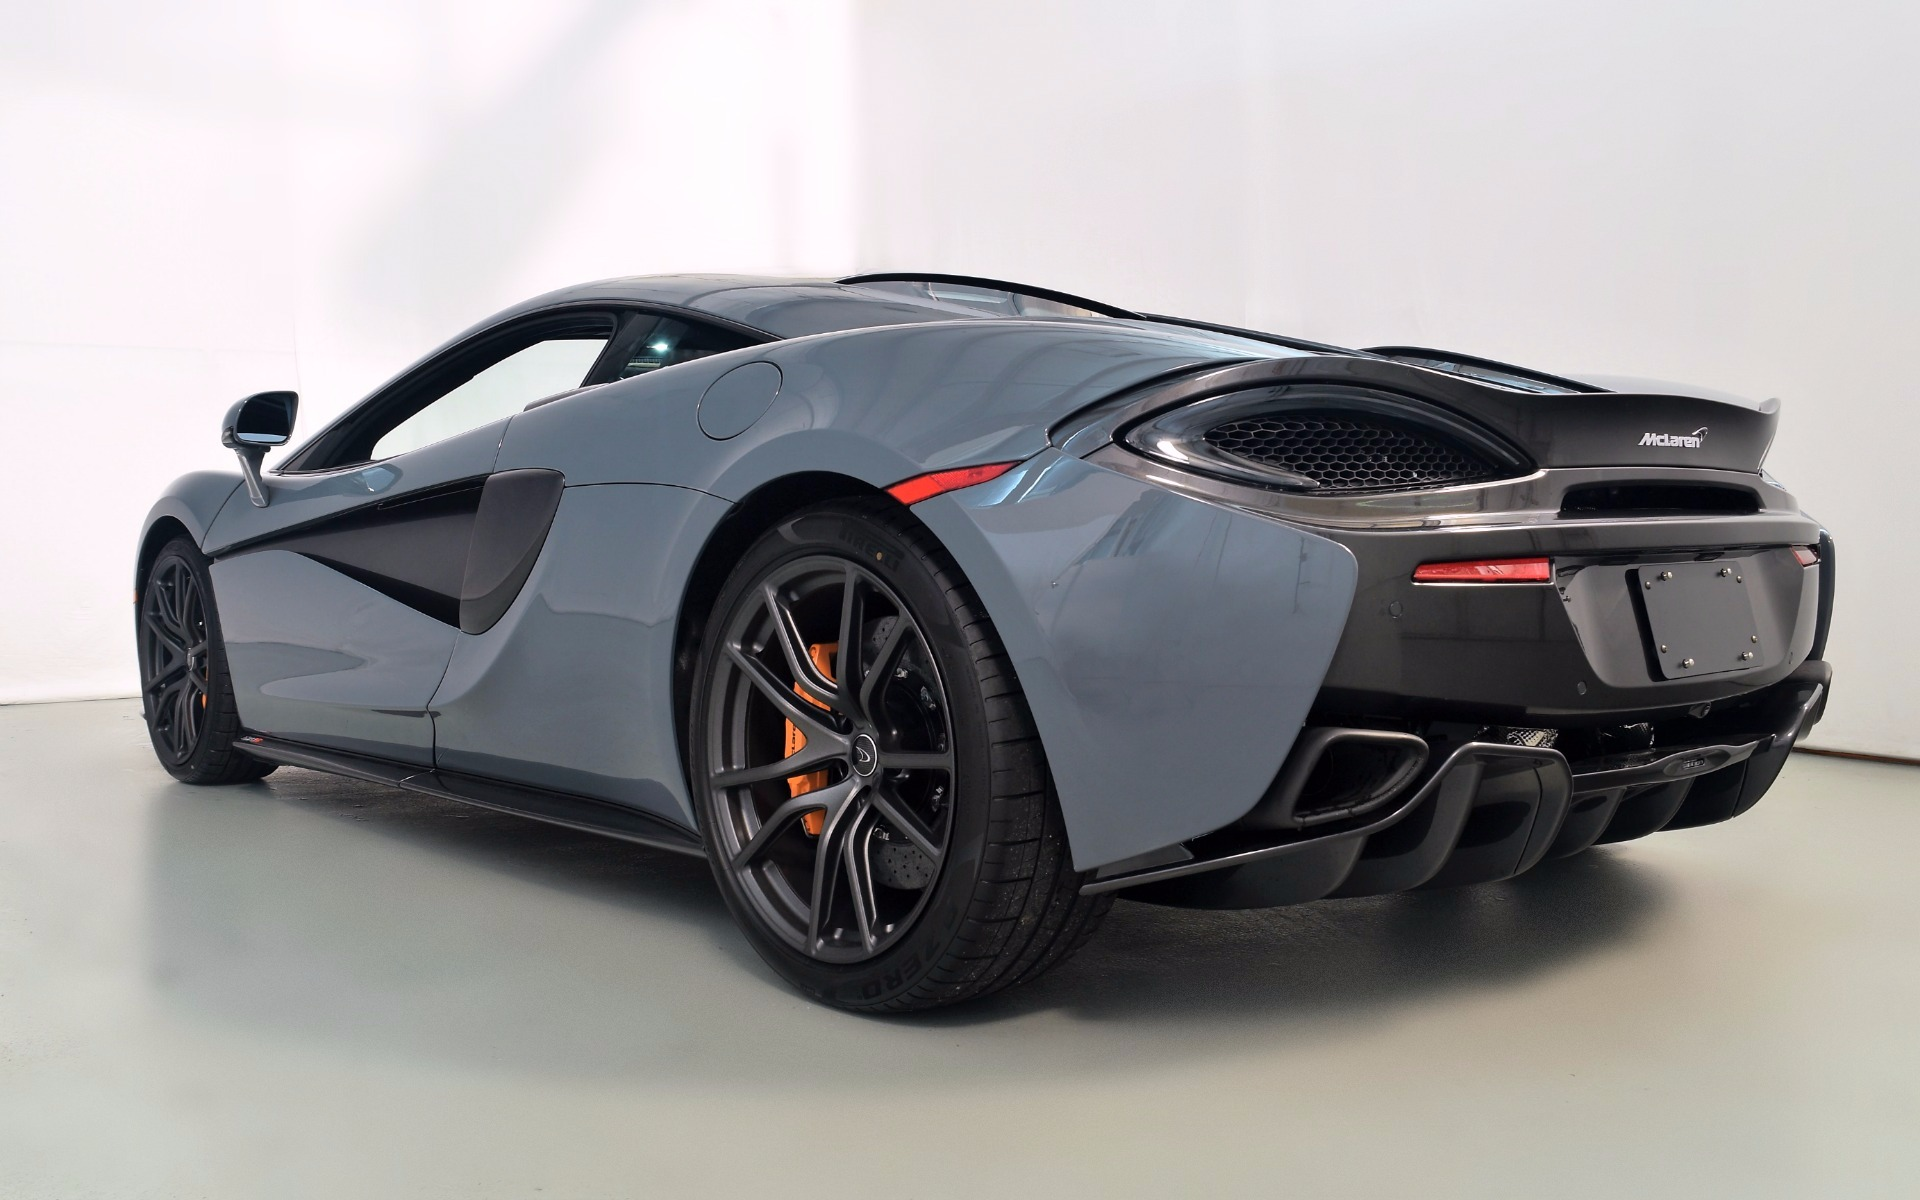 2017 mclaren 570s for sale in norwell ma 001805 mclaren boston. Black Bedroom Furniture Sets. Home Design Ideas